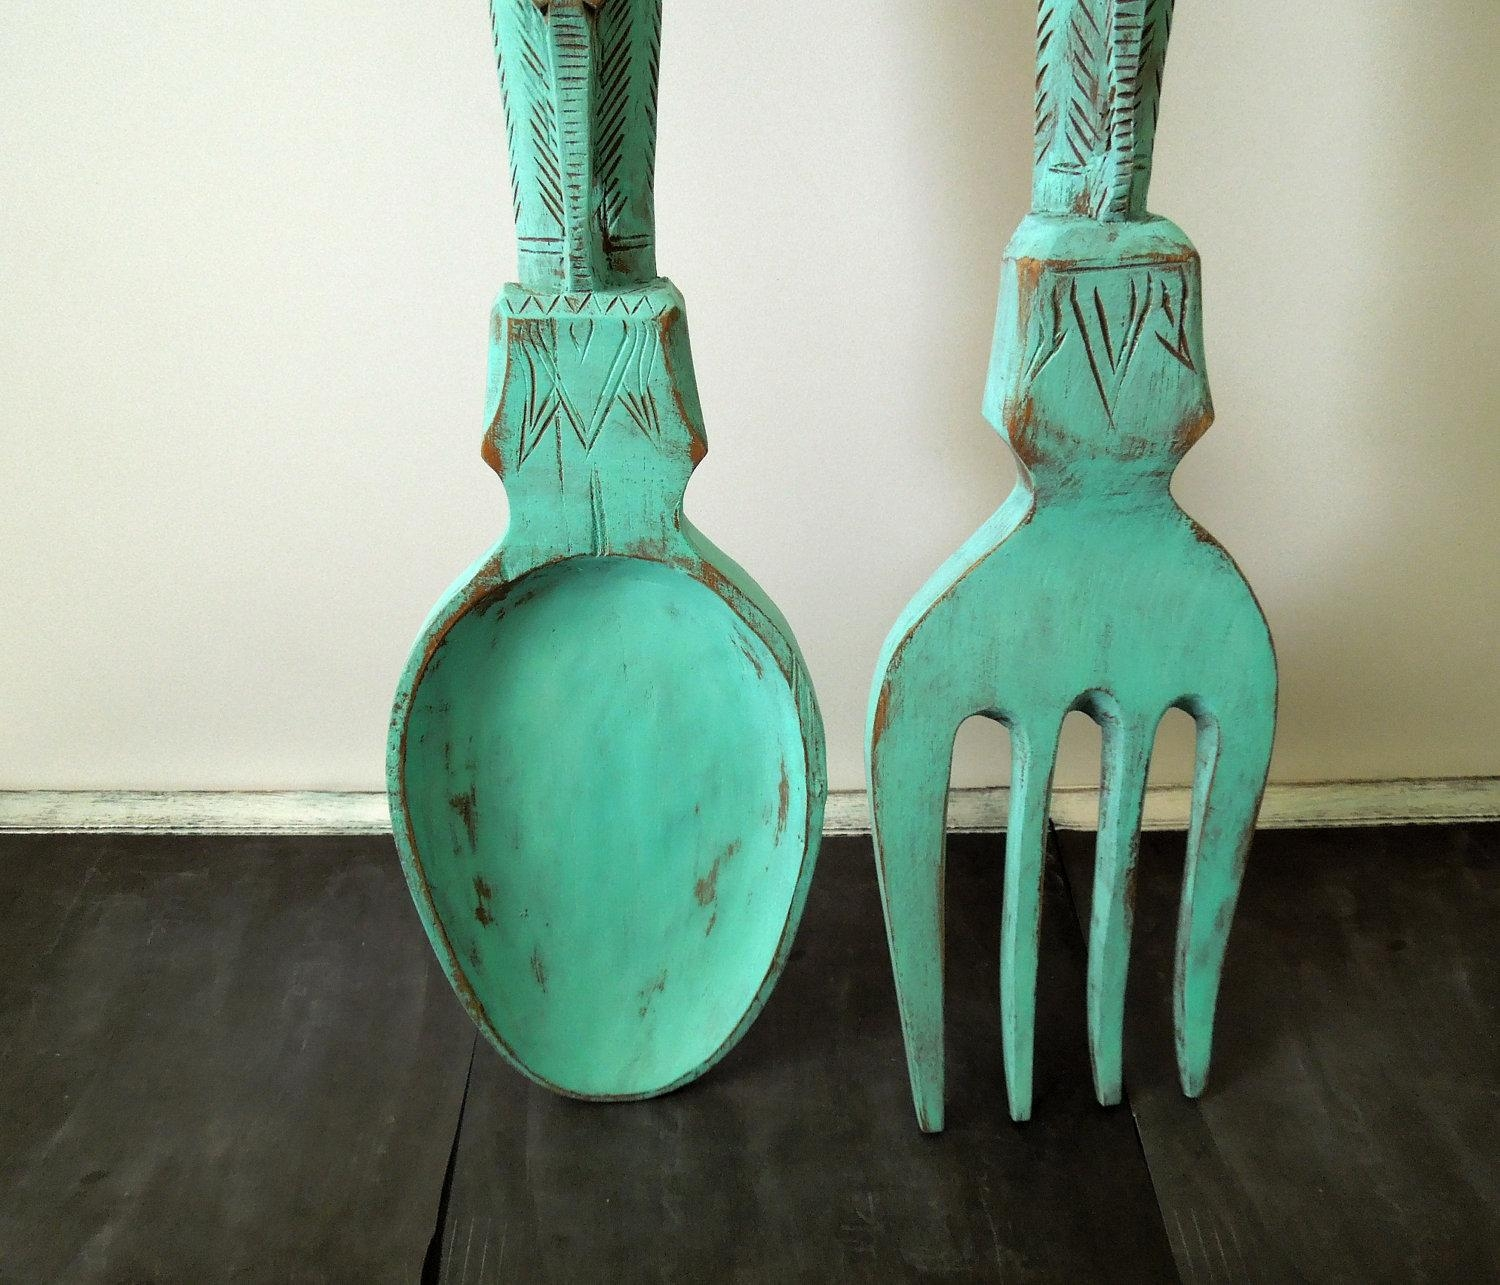 Excellent Oversized Fork And Spoon Wall Decoration 16 Giant Knife Pertaining To Big Spoon And Fork Decors (Image 4 of 20)